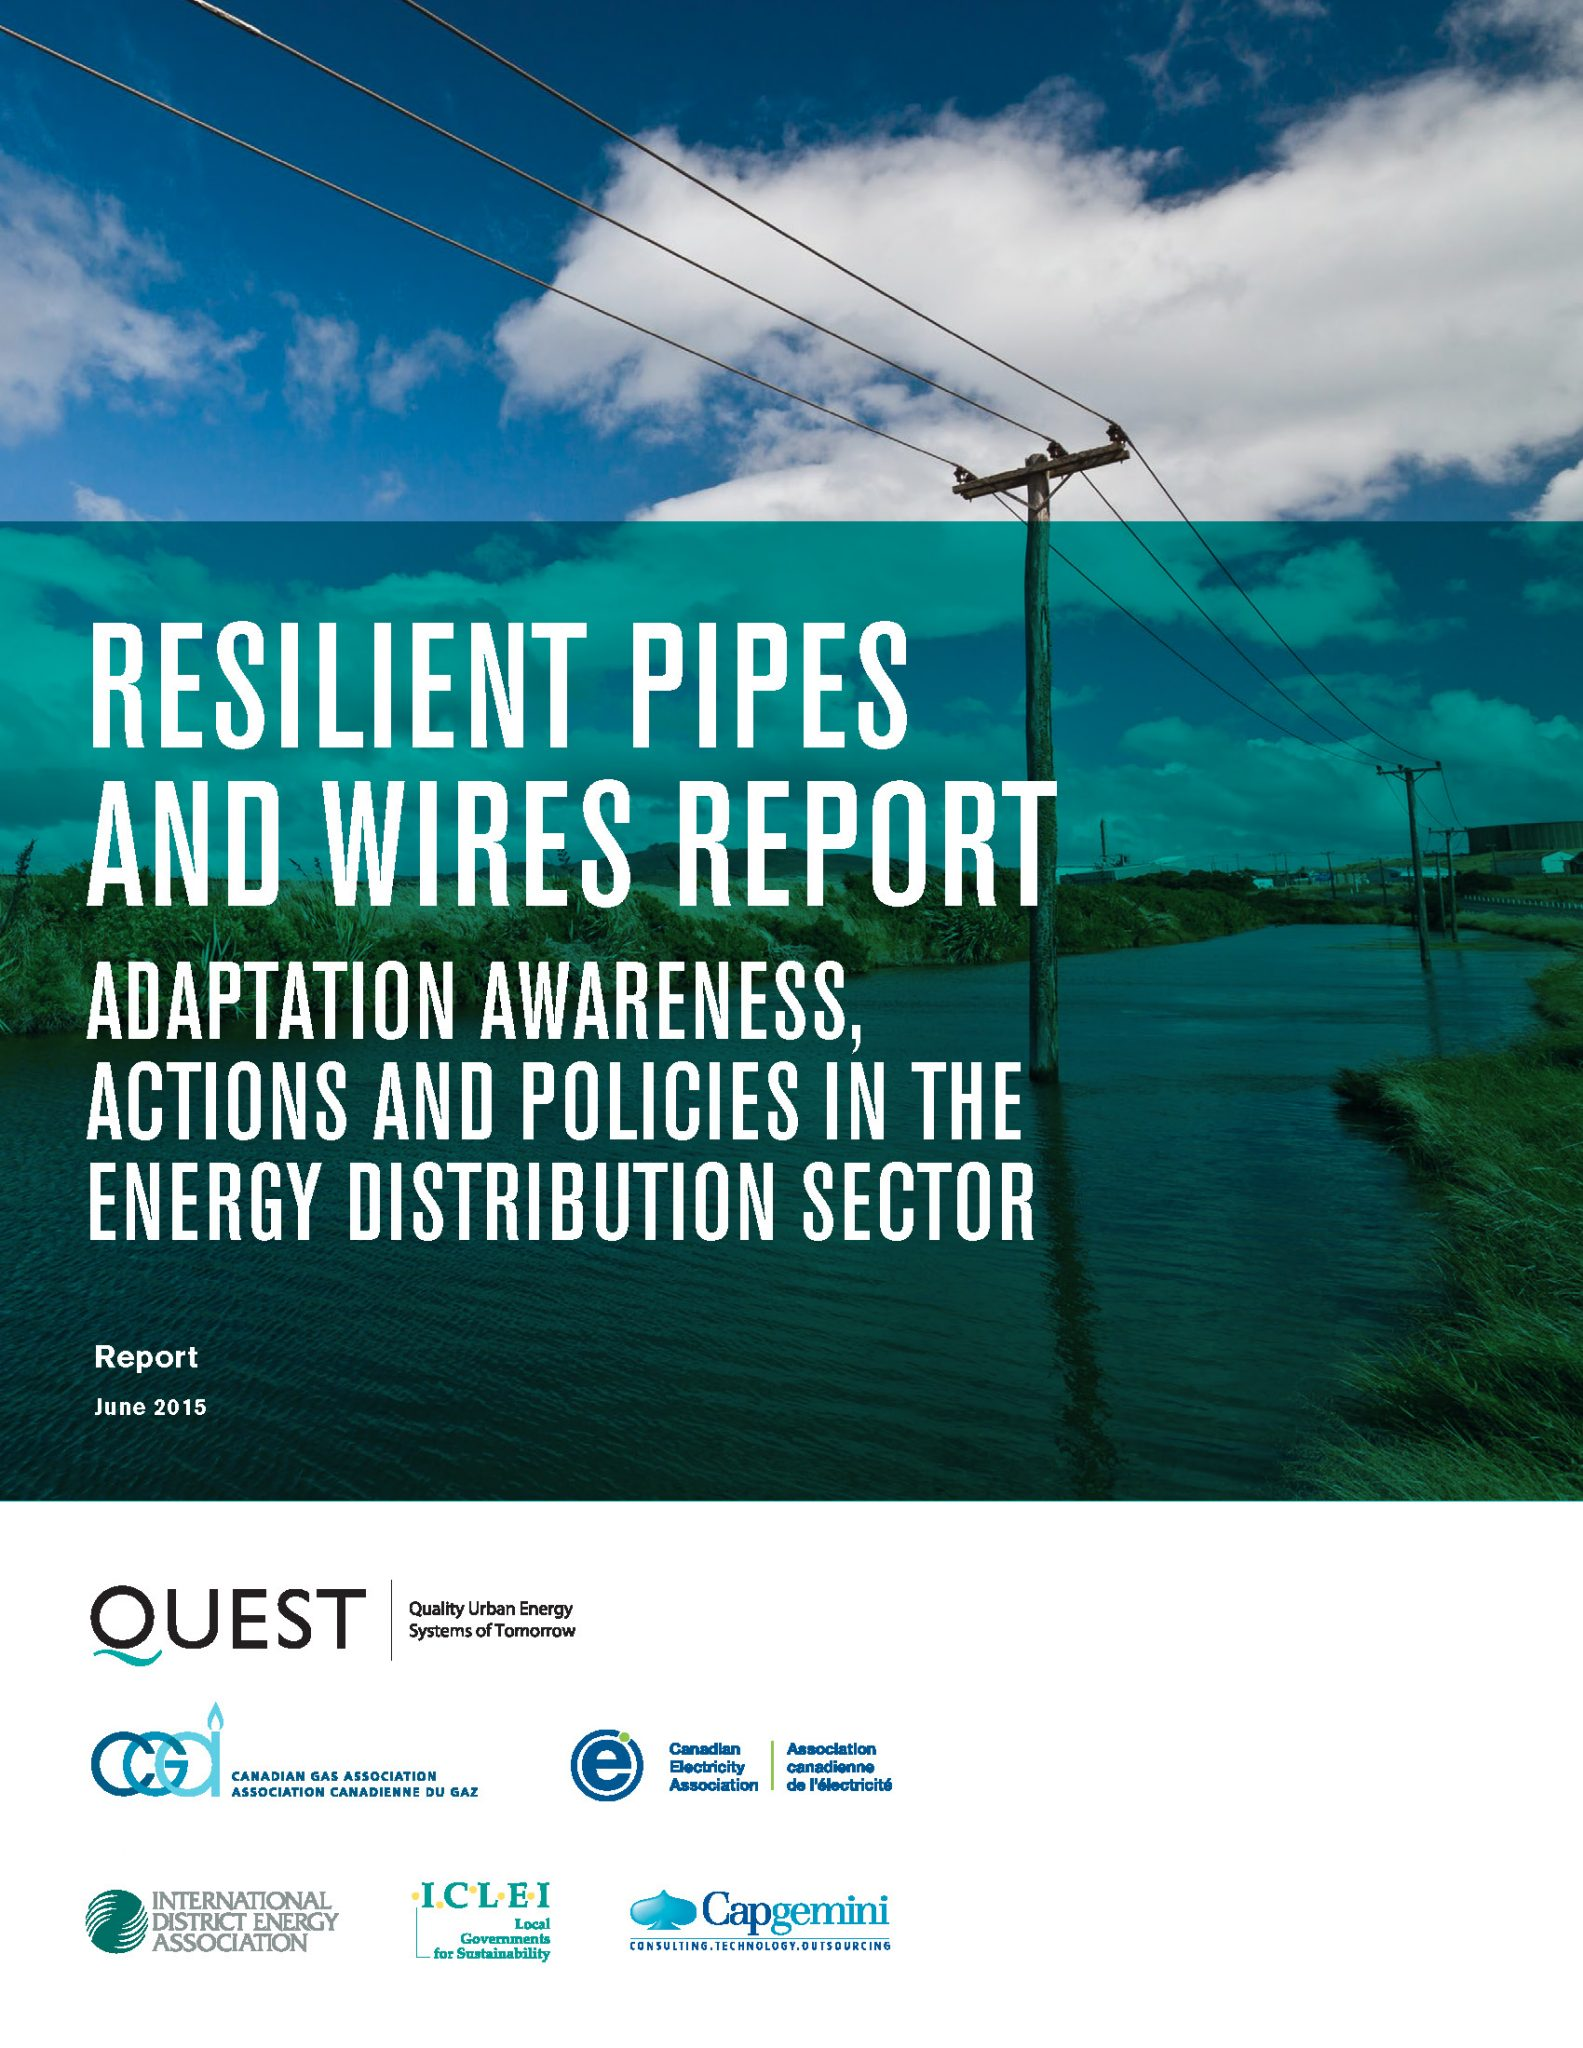 Resilient Pipes and Wires Adaptation Awareness, Actions and Policies in the Energy Distribution Sector